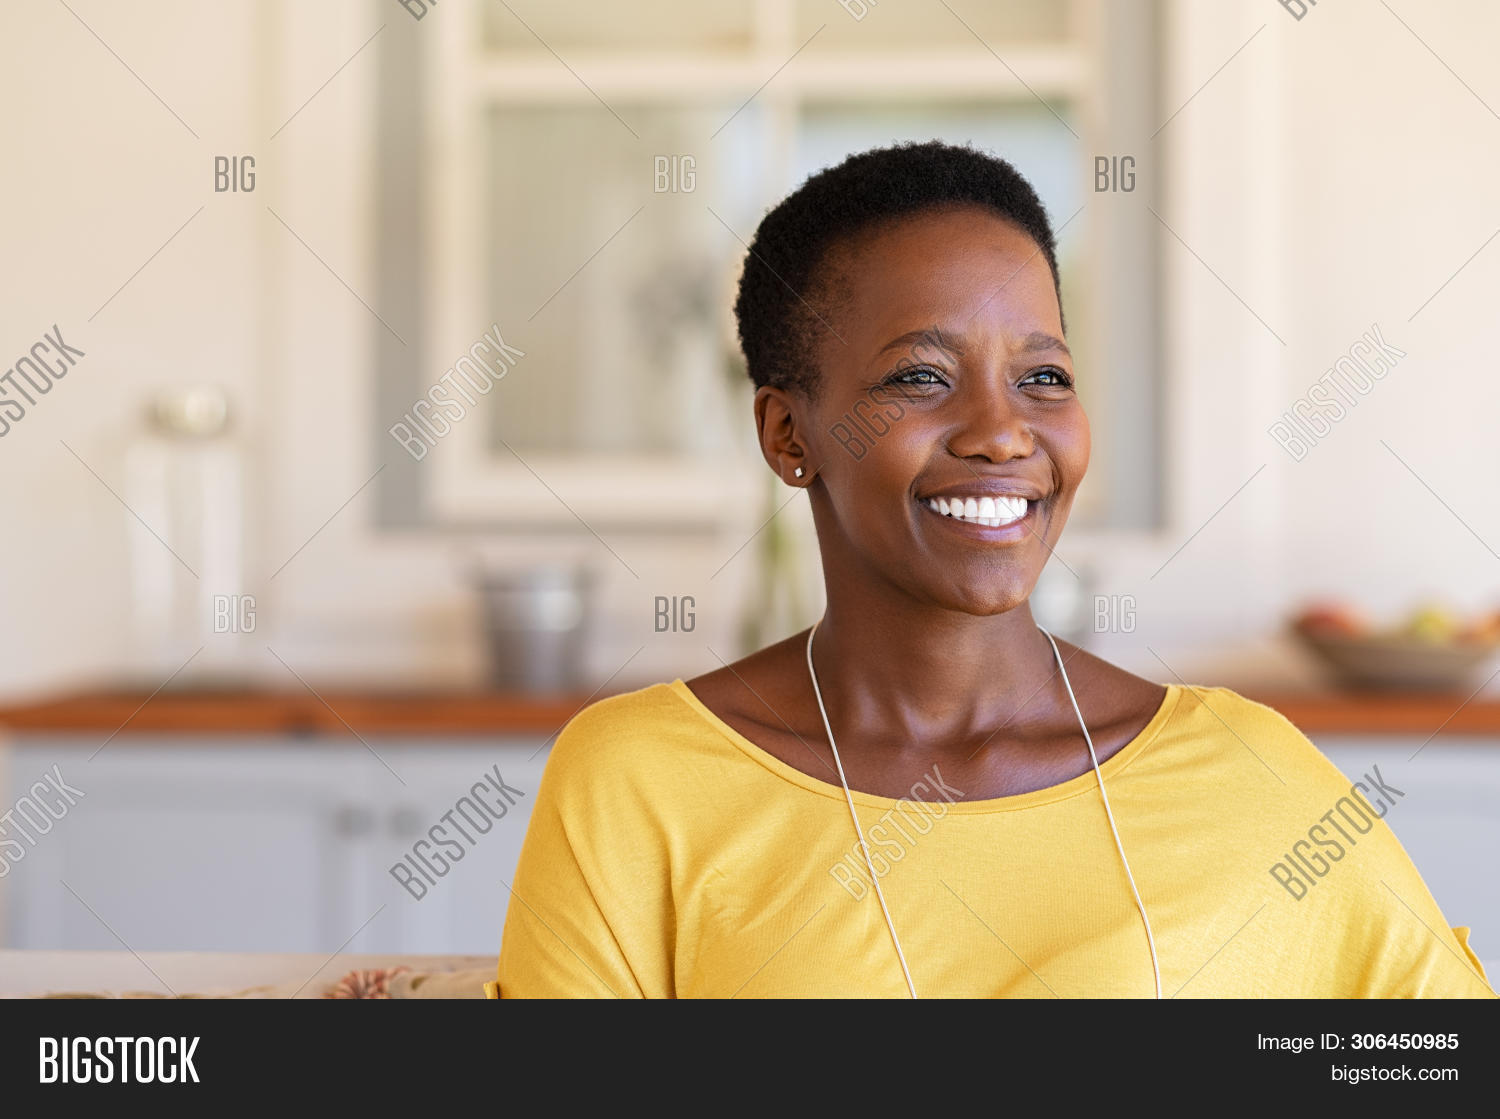 african,african american,african woman,afro,american,aspiration,beautiful,beautiful woman,black,care,carefree,casual,cheerful,confidence,confident,copy space,couch,daydreaming,enjoy,expression,freedom,future,happiness,happy,healthy,home,hope,imagination,joy,lifestyle,looking away,mature,mid adult woman,middle aged woman,patio garden,people,portrait,pretty,real,real people,relax,relaxing at home,satisfaction,satisfied,sitting,smile,sofa,toothy smile,vision,young